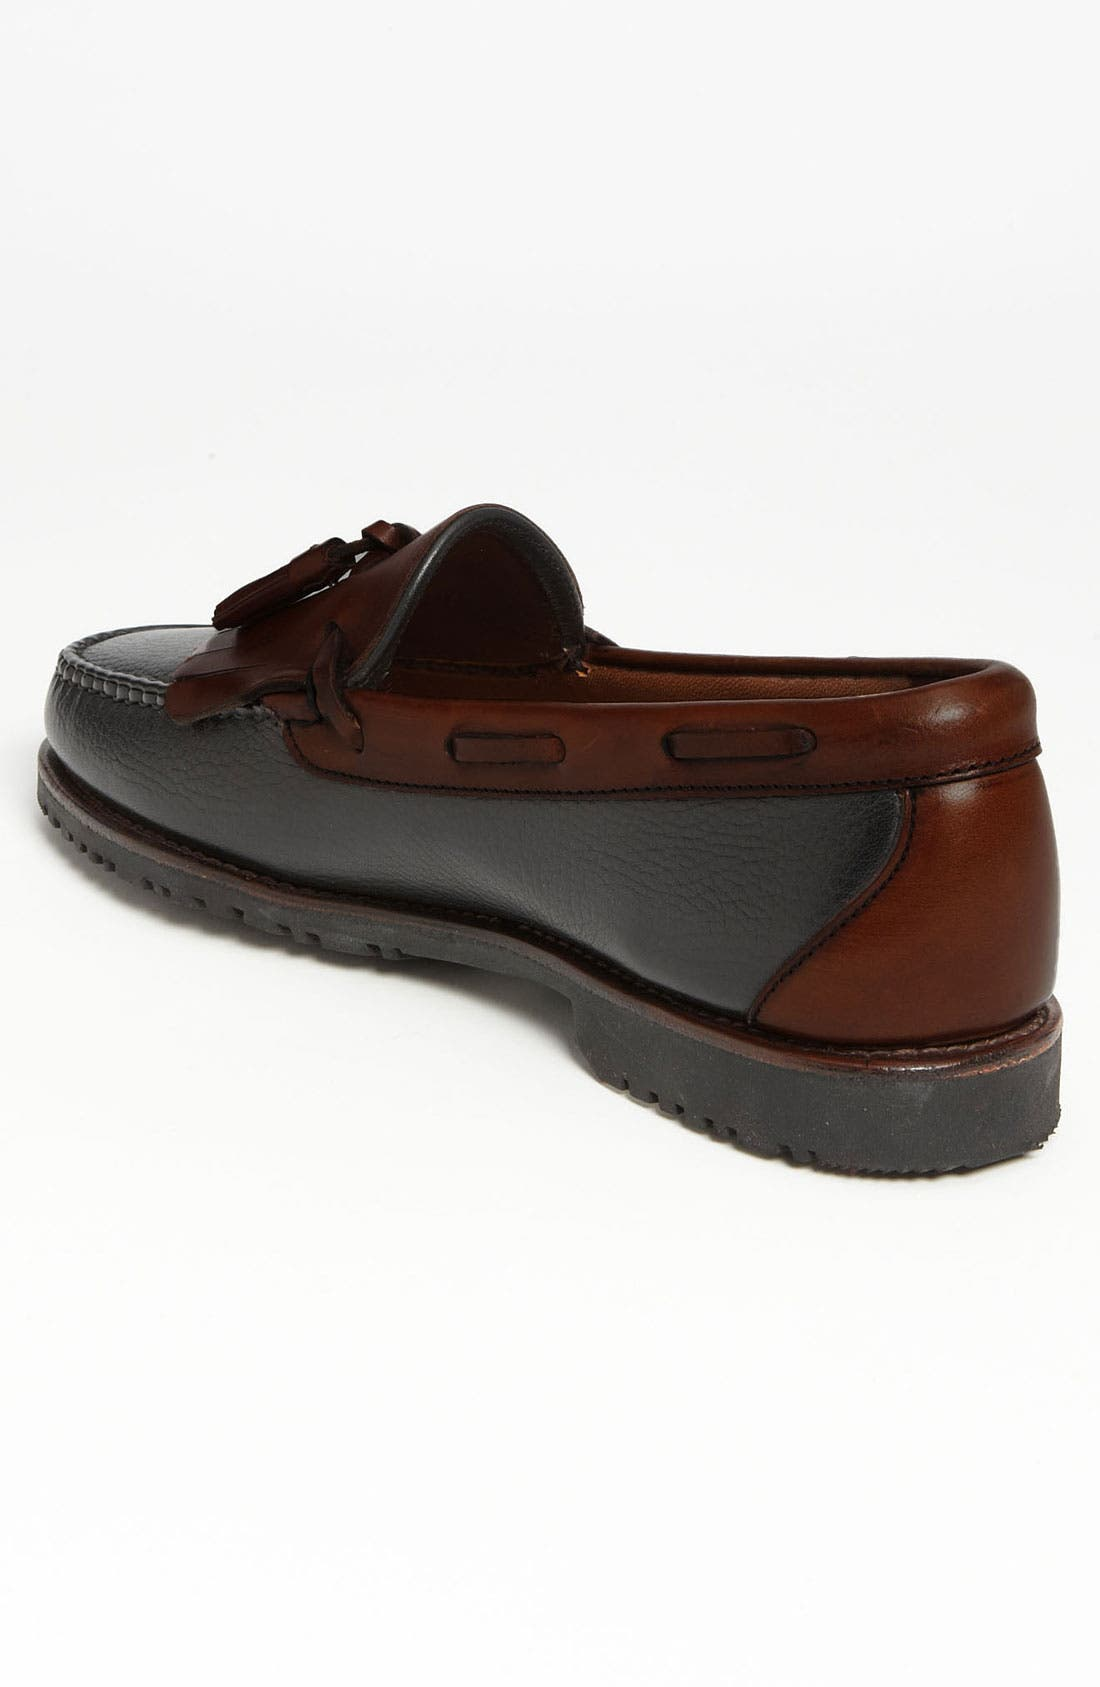 Alternate Image 2  - Allen Edmonds 'Nashua' Tassel Loafer (Men)